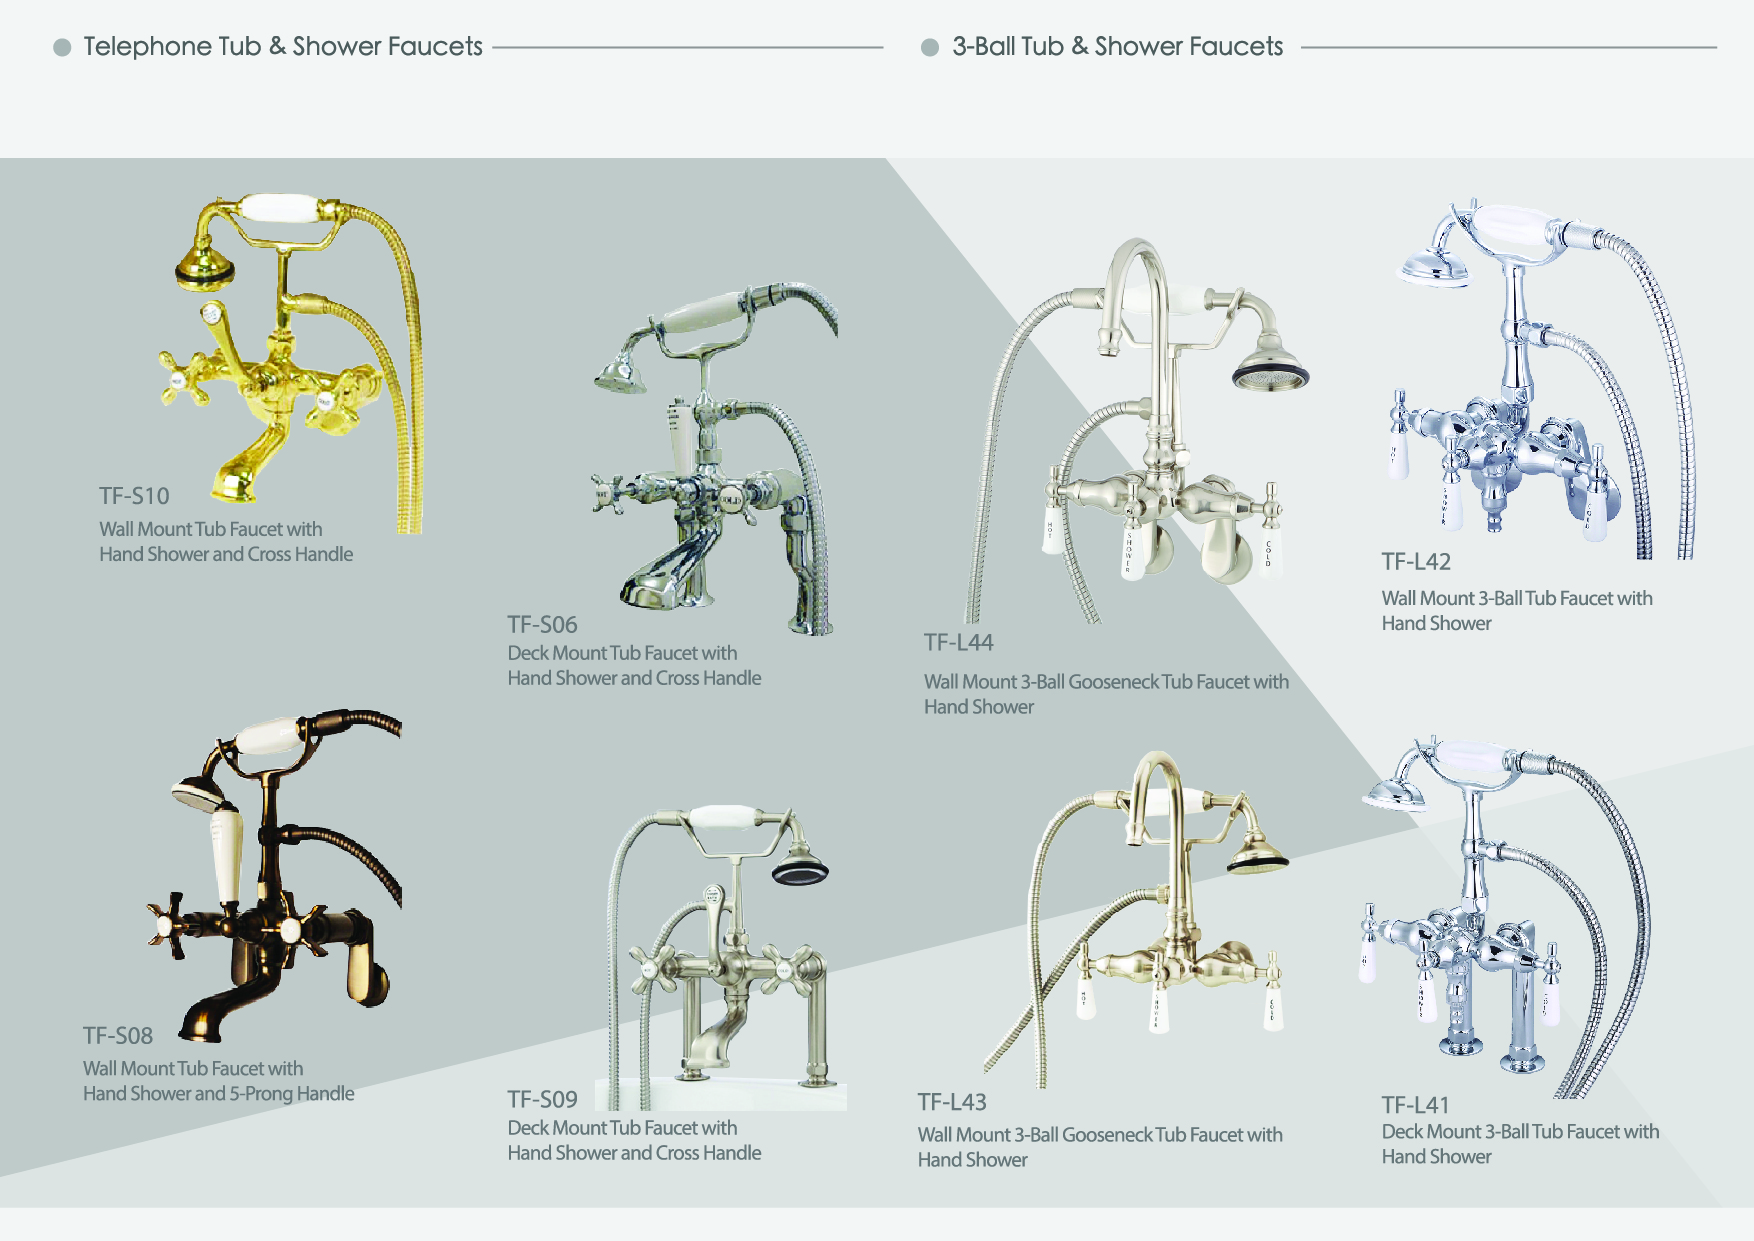 Traditional Tub & Shower Faucets